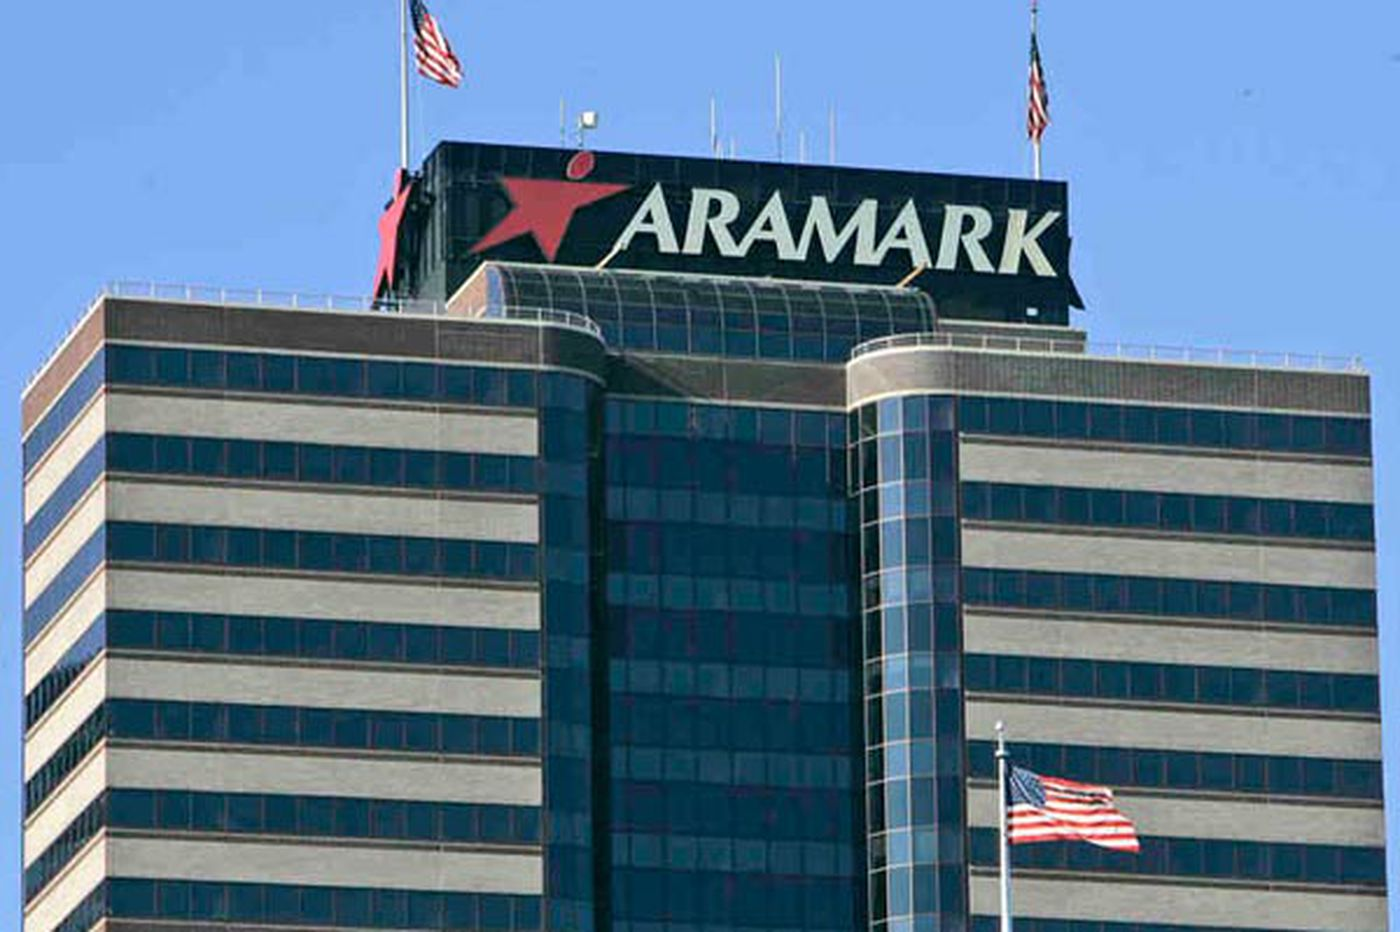 S&P boosts Aramark ratings; shares up 19% since IPO